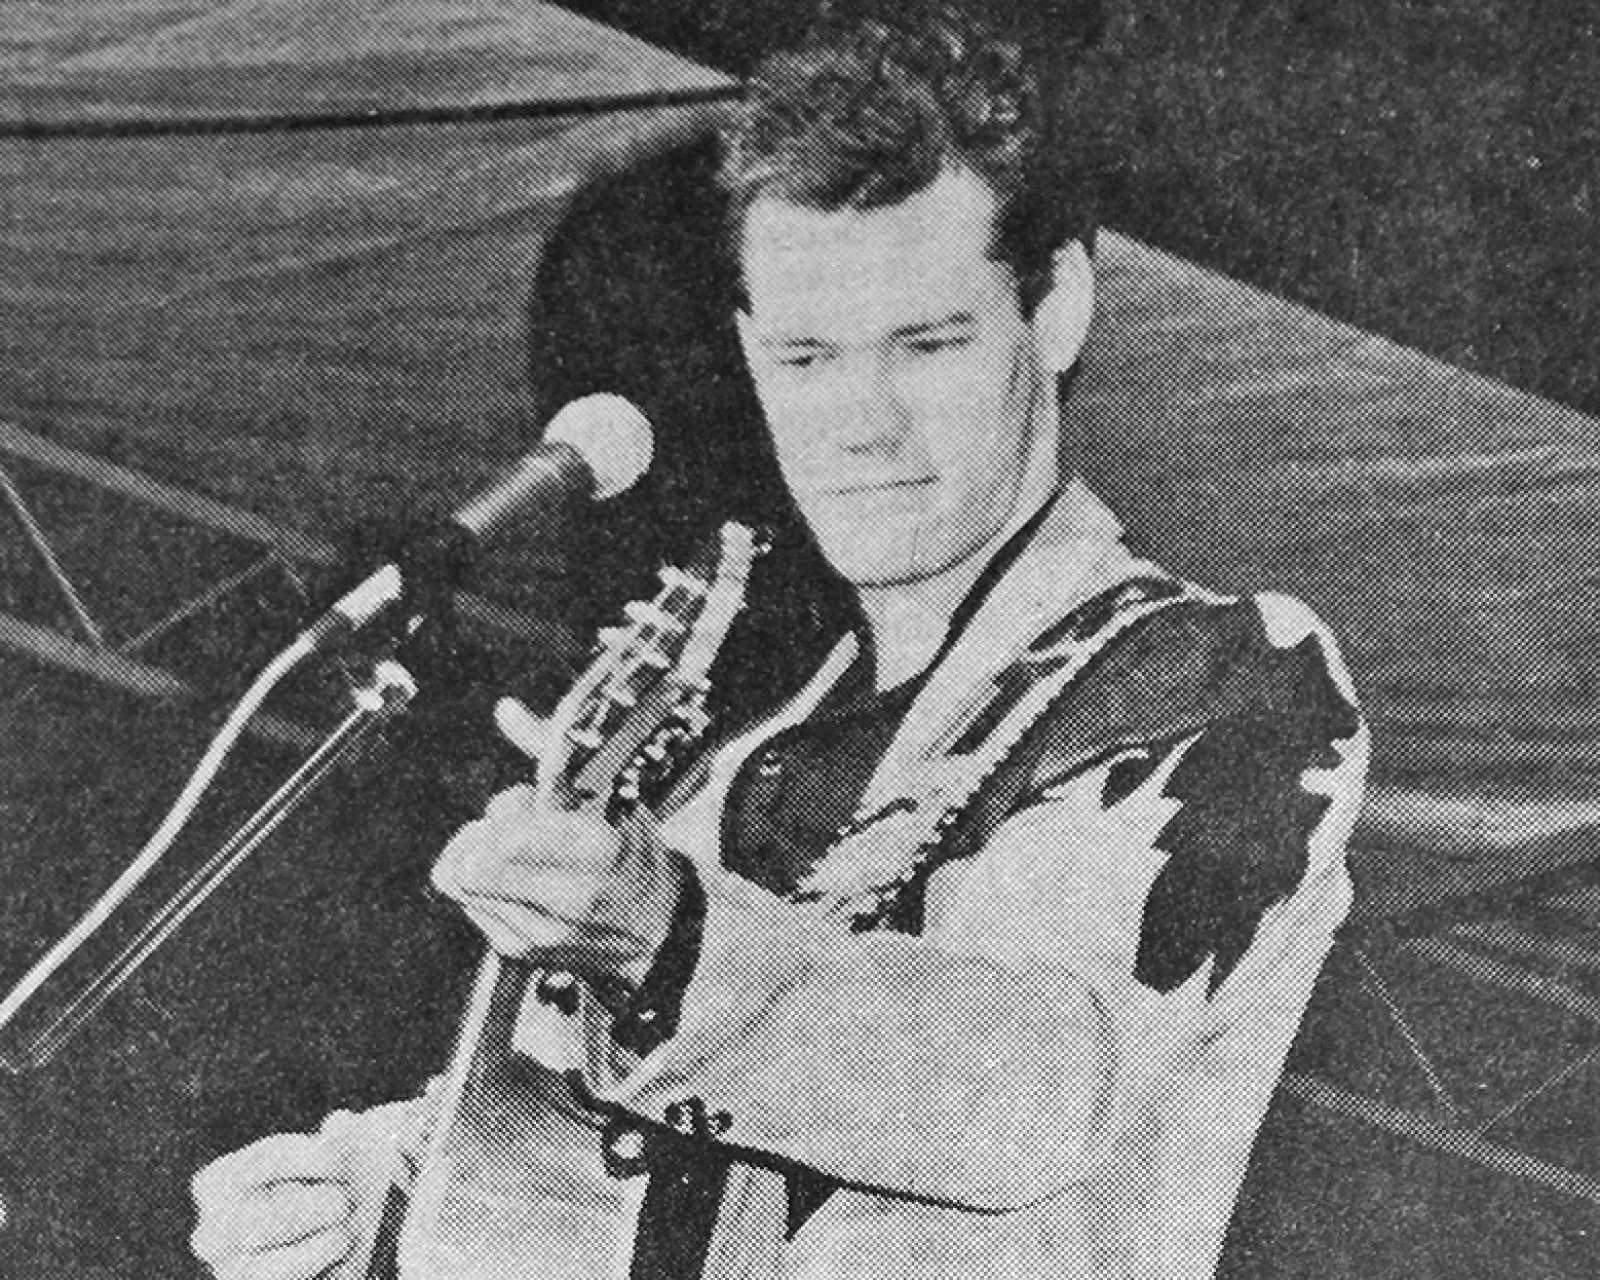 Sheriff celebrates 40th year working SCF&R: Robbins recalls Randy Travis concert